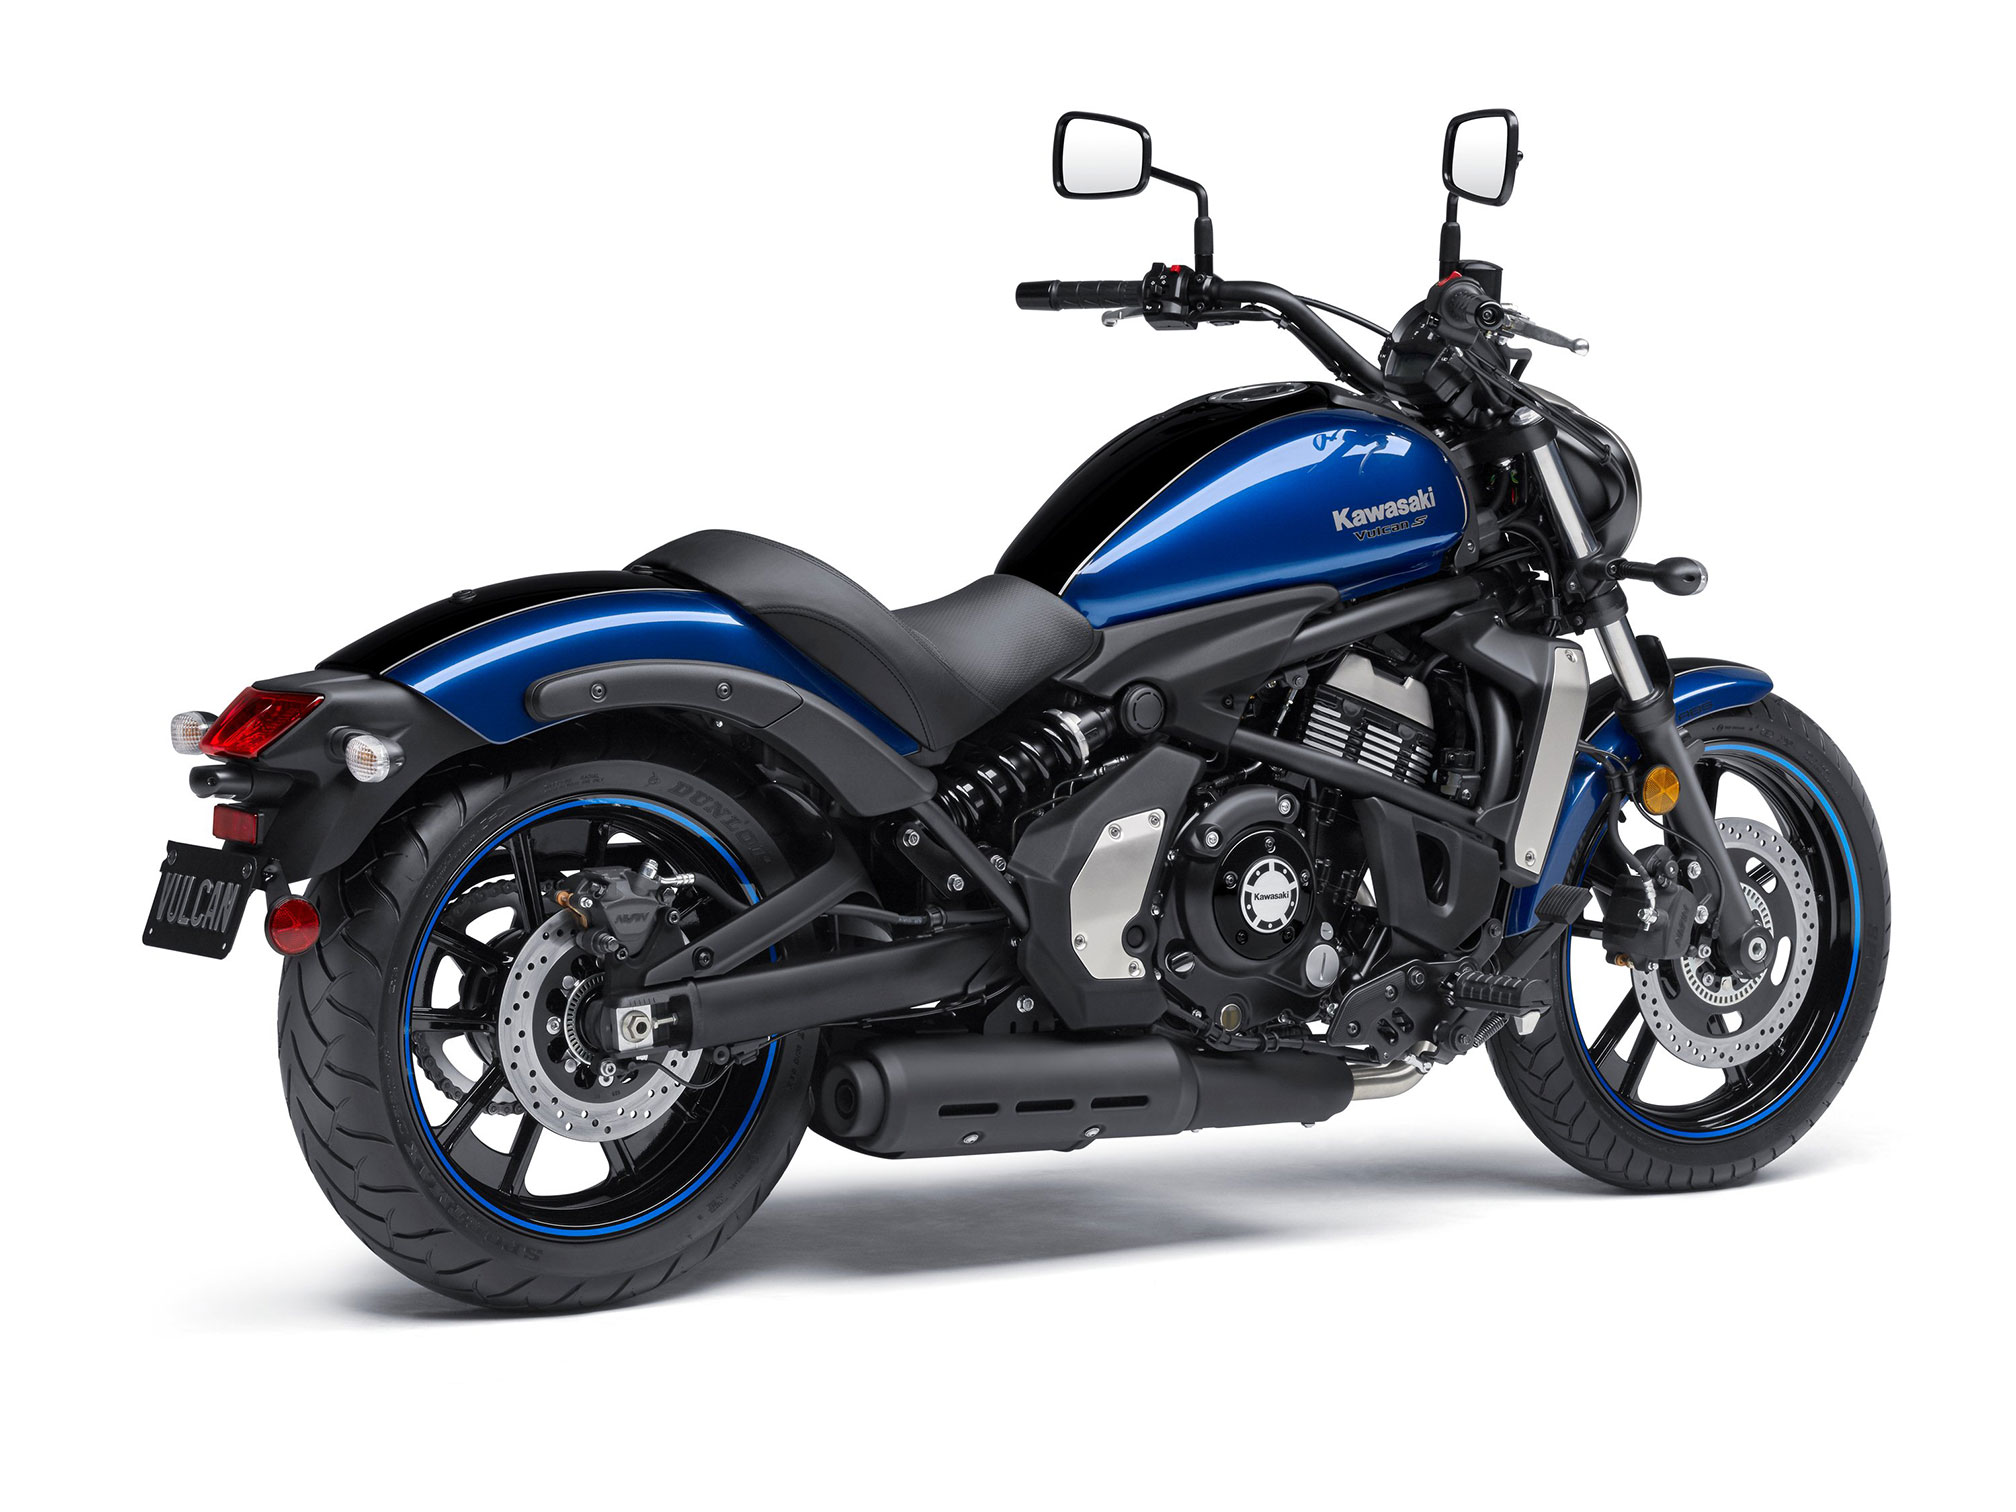 2016 kawasaki vulcan s abs se review. Black Bedroom Furniture Sets. Home Design Ideas